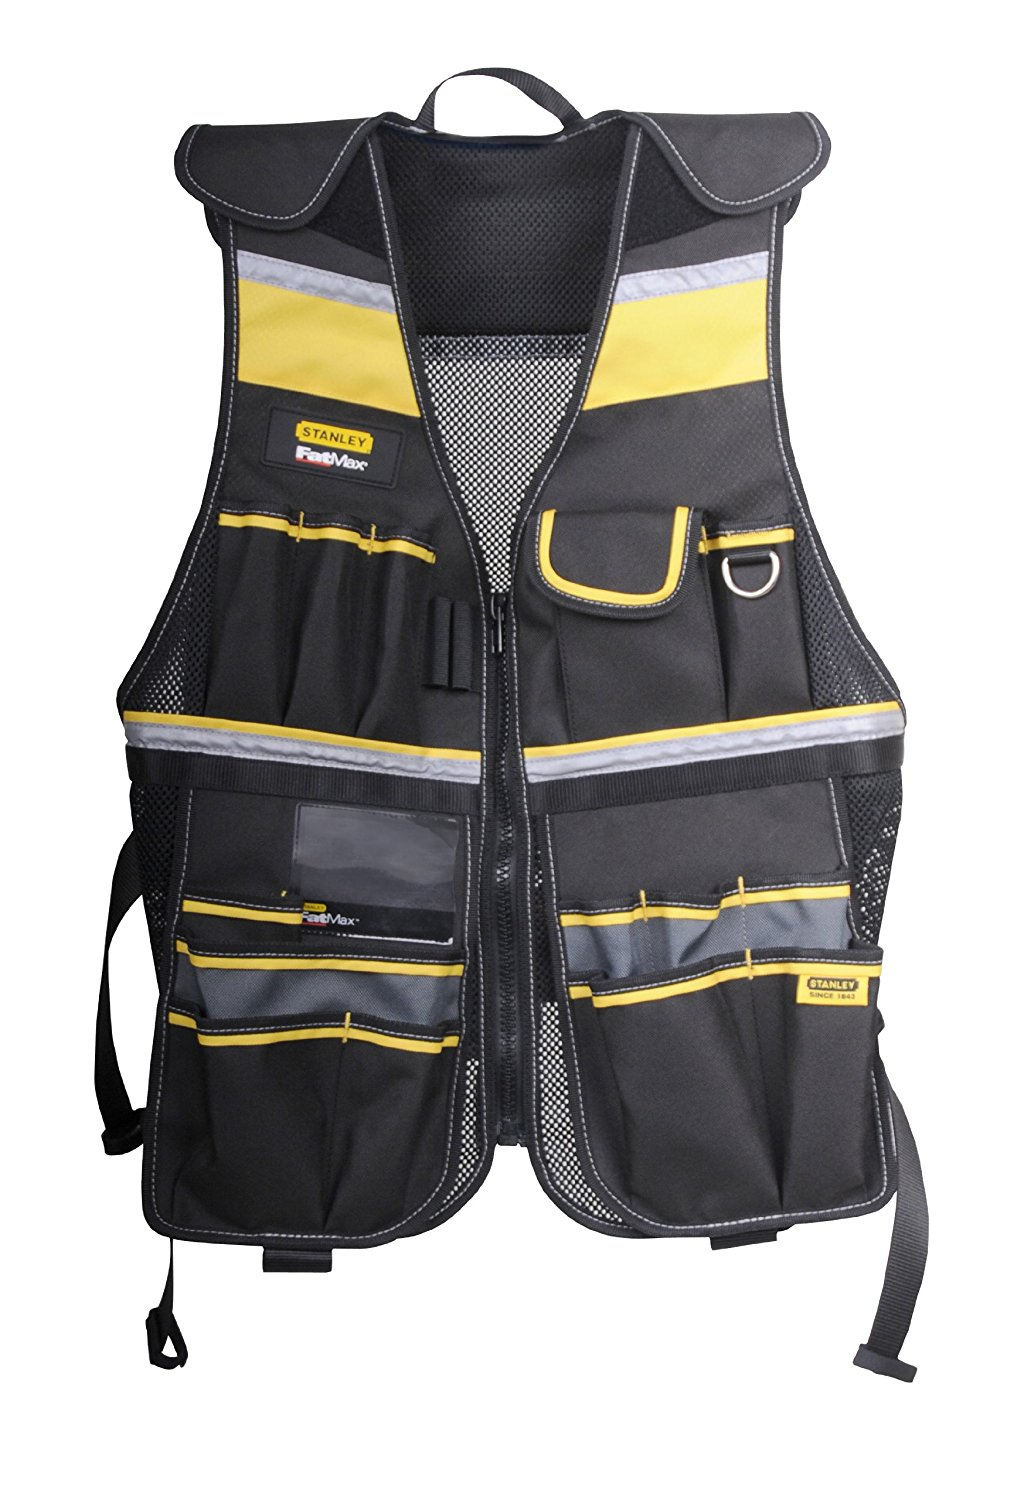 Stanley Fatmax Tool Vest for Construction